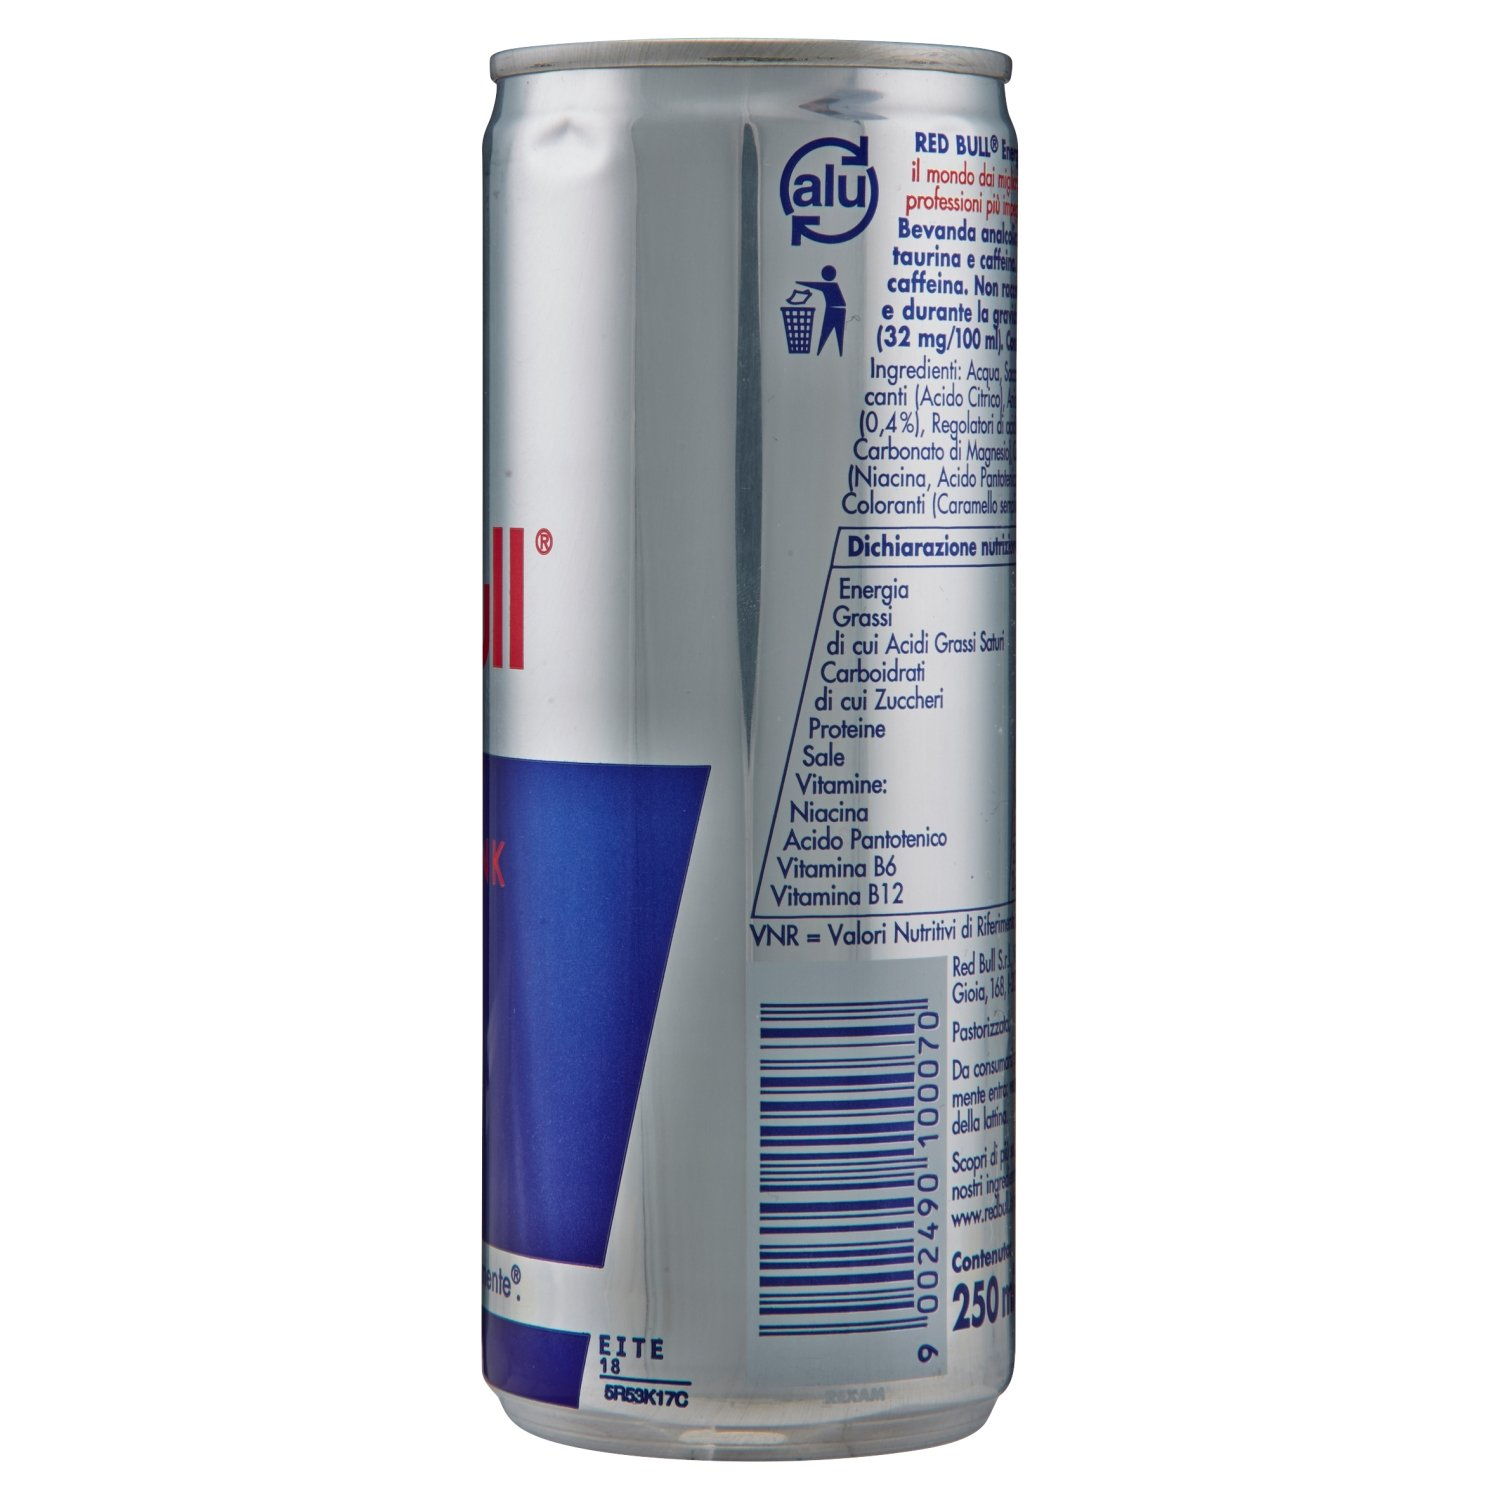 Red Bull - Bebida energético - Regular Lata 250 ml: Amazon.es: Alimentación y bebidas